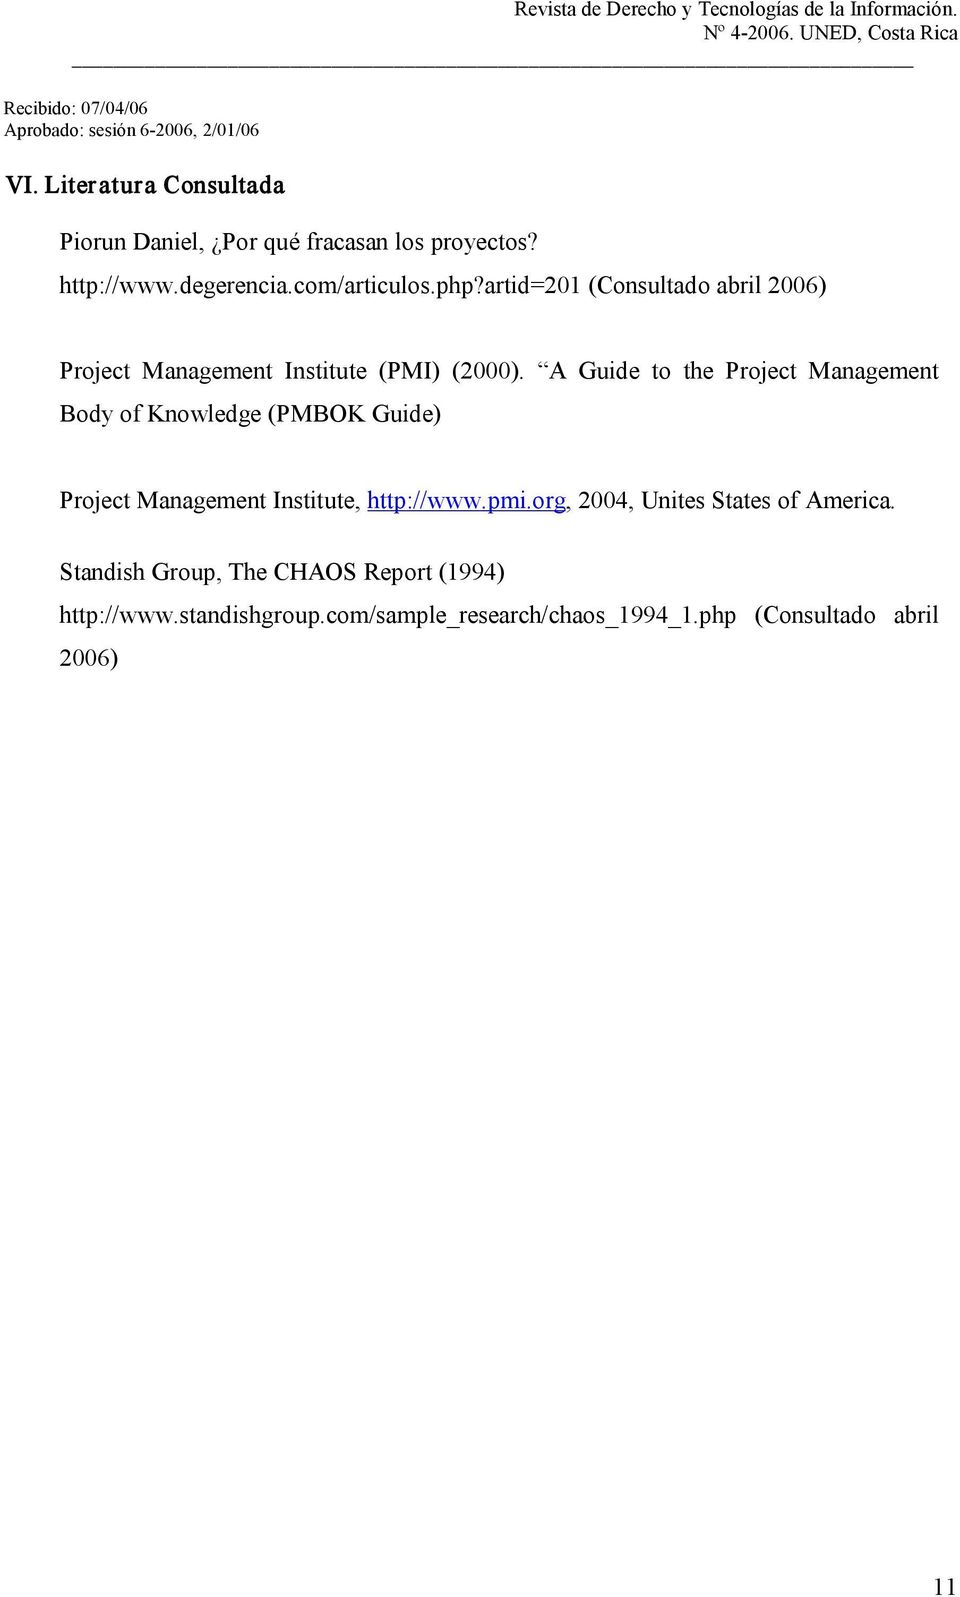 A Guide to the Project Management Body of Knowledge (PMBOK Guide) Project Management Institute, http://www.pmi.